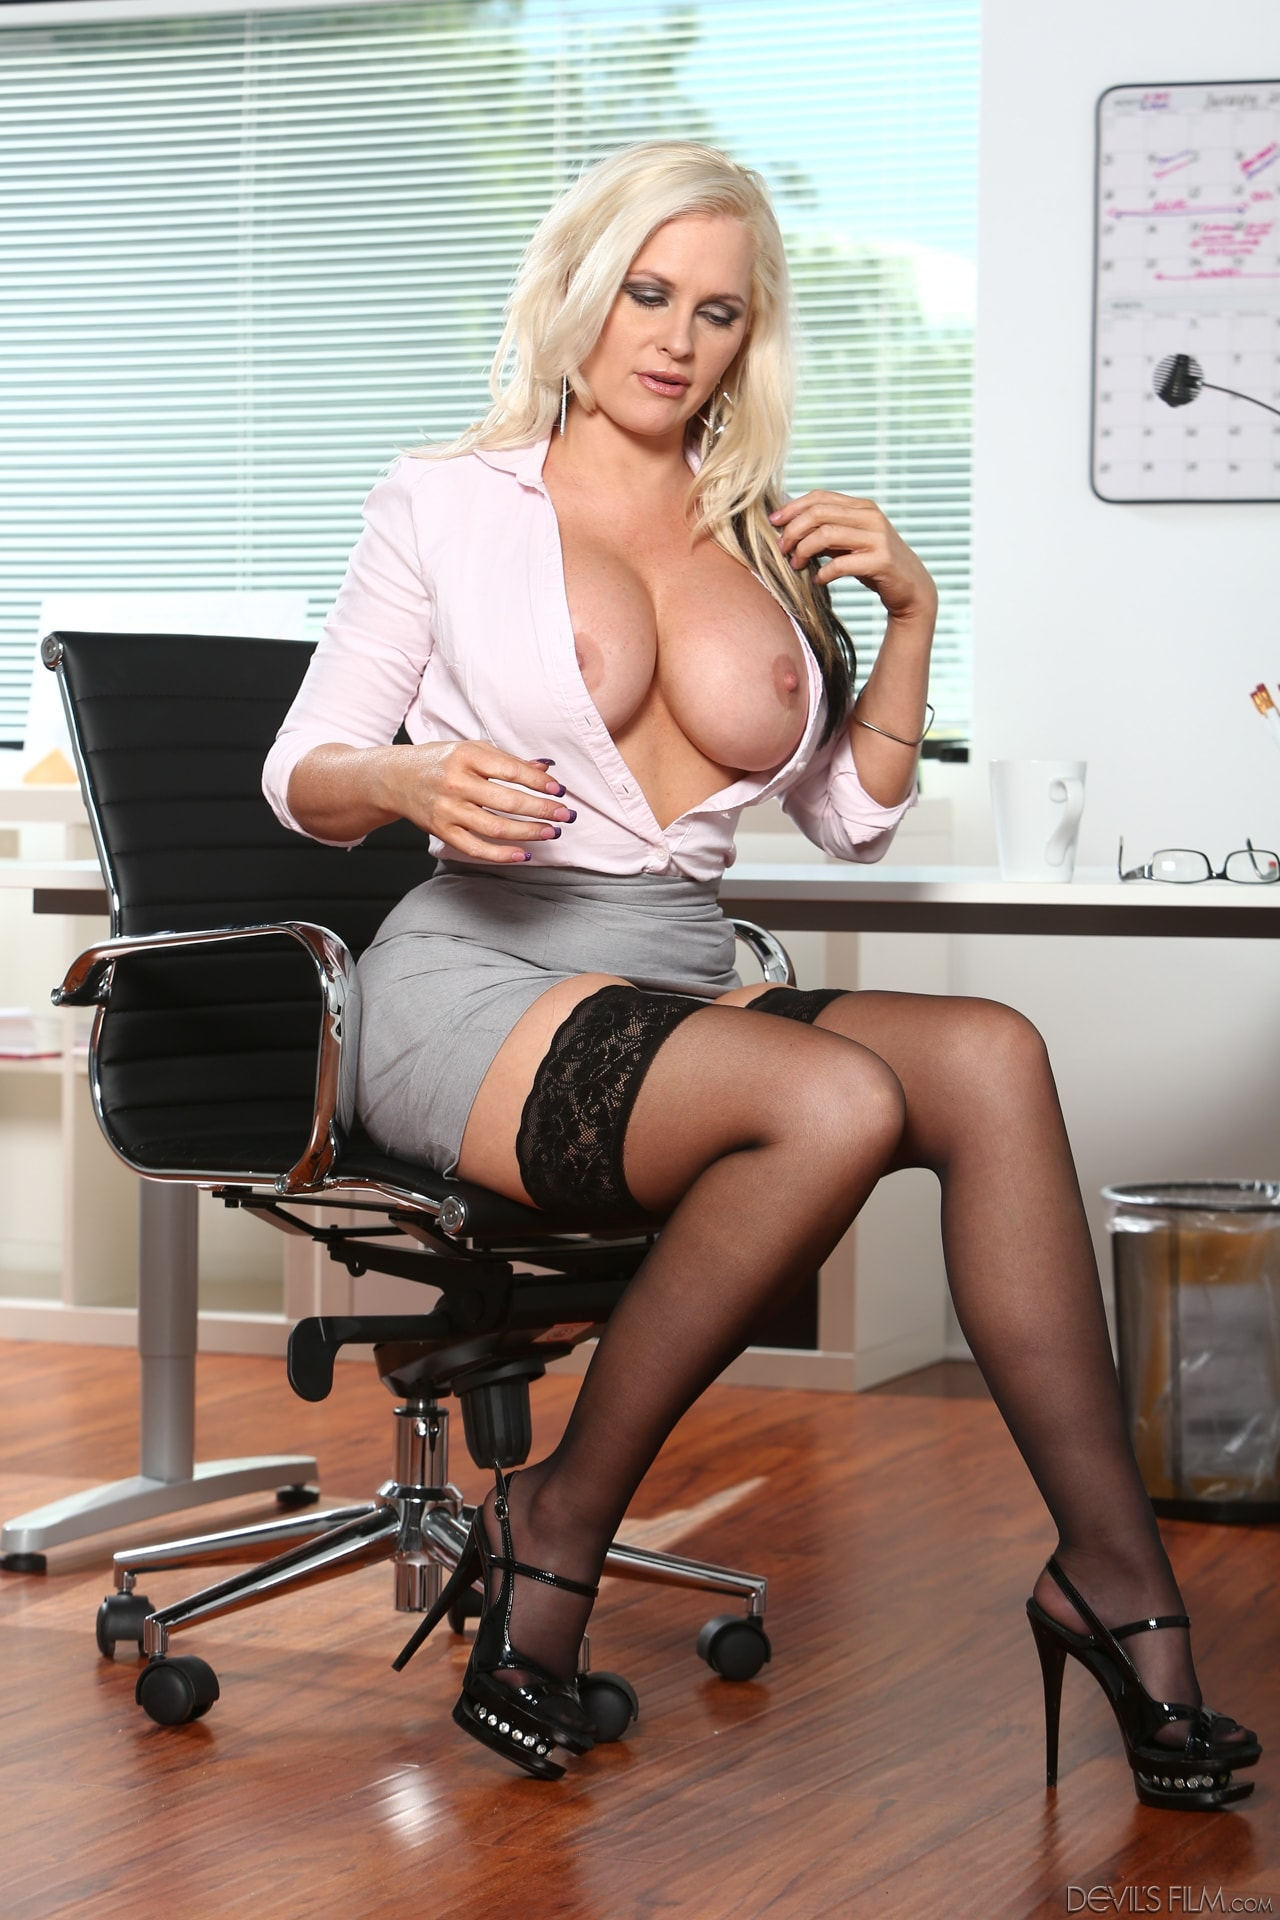 Large Breasts Archives